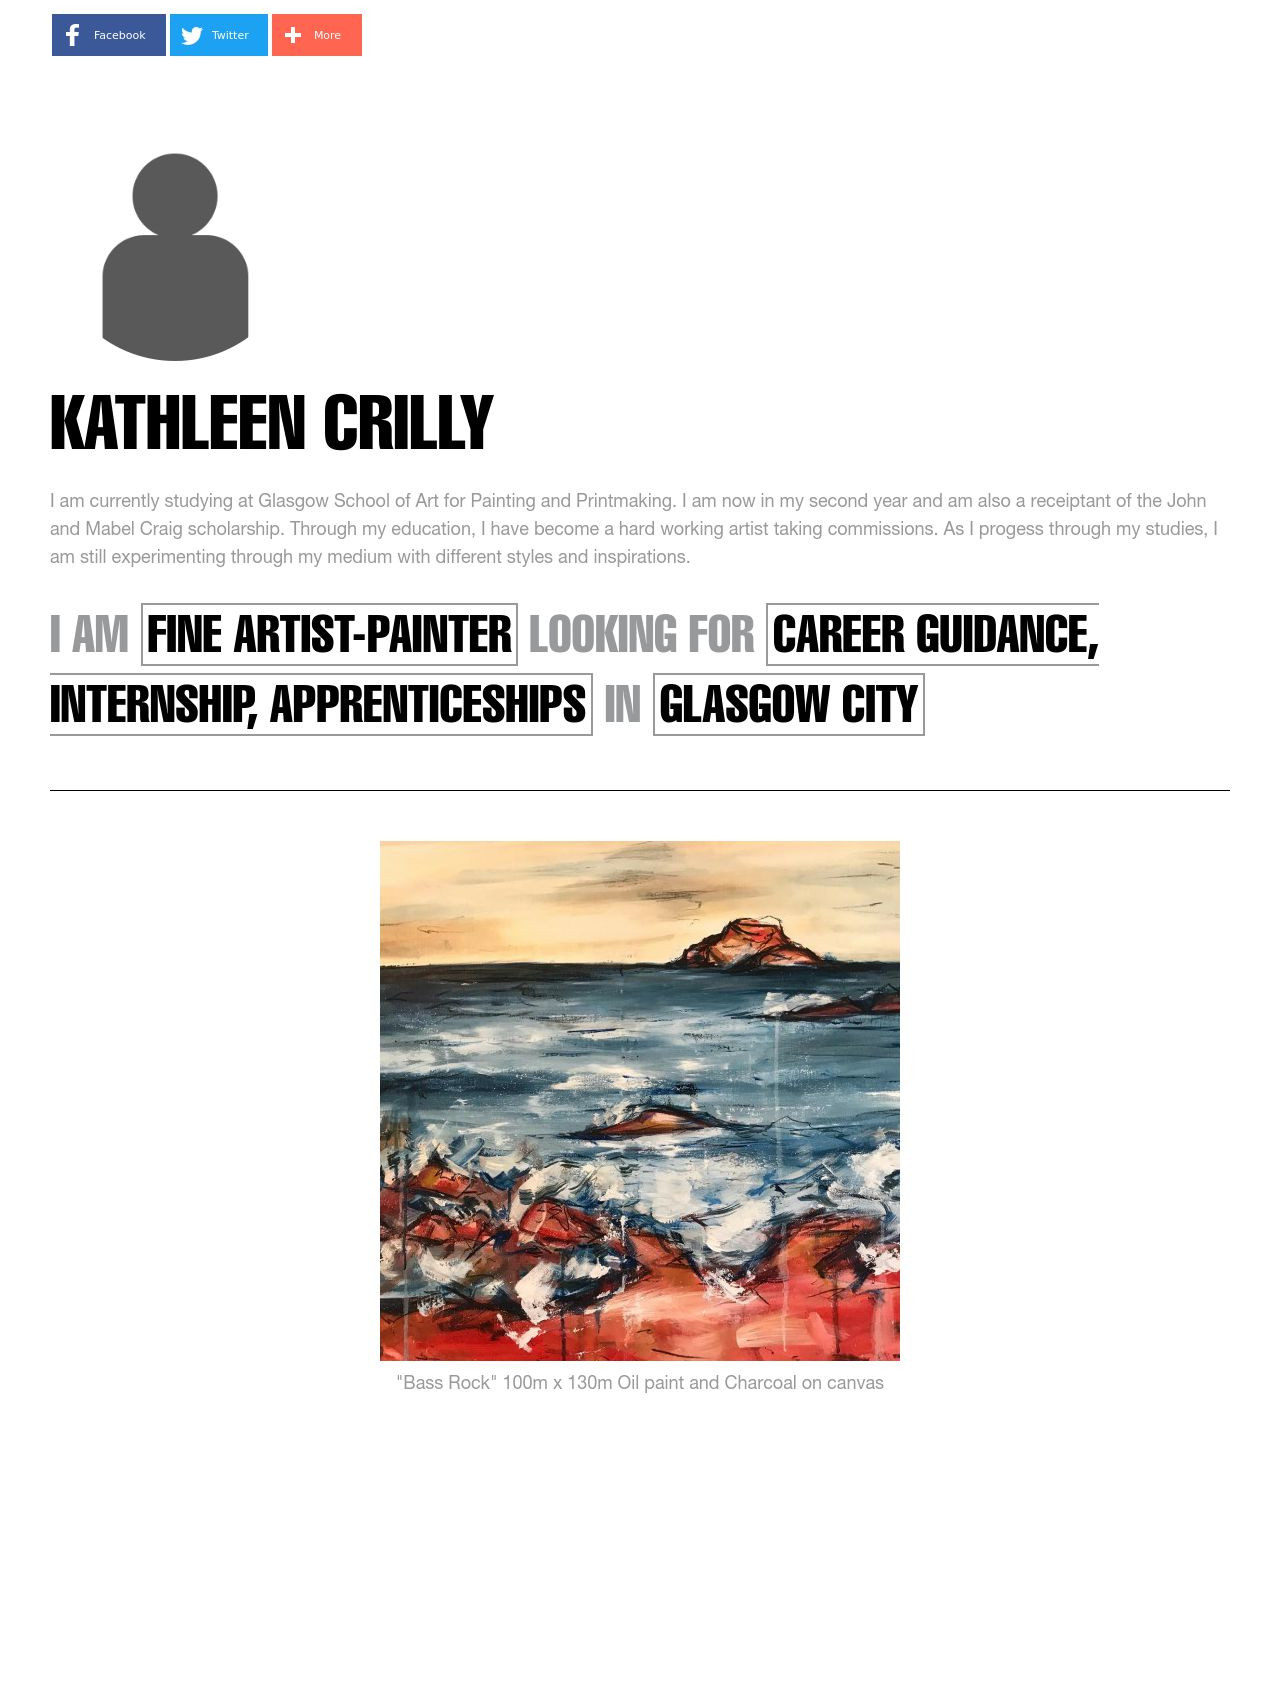 Kathleen Crilly